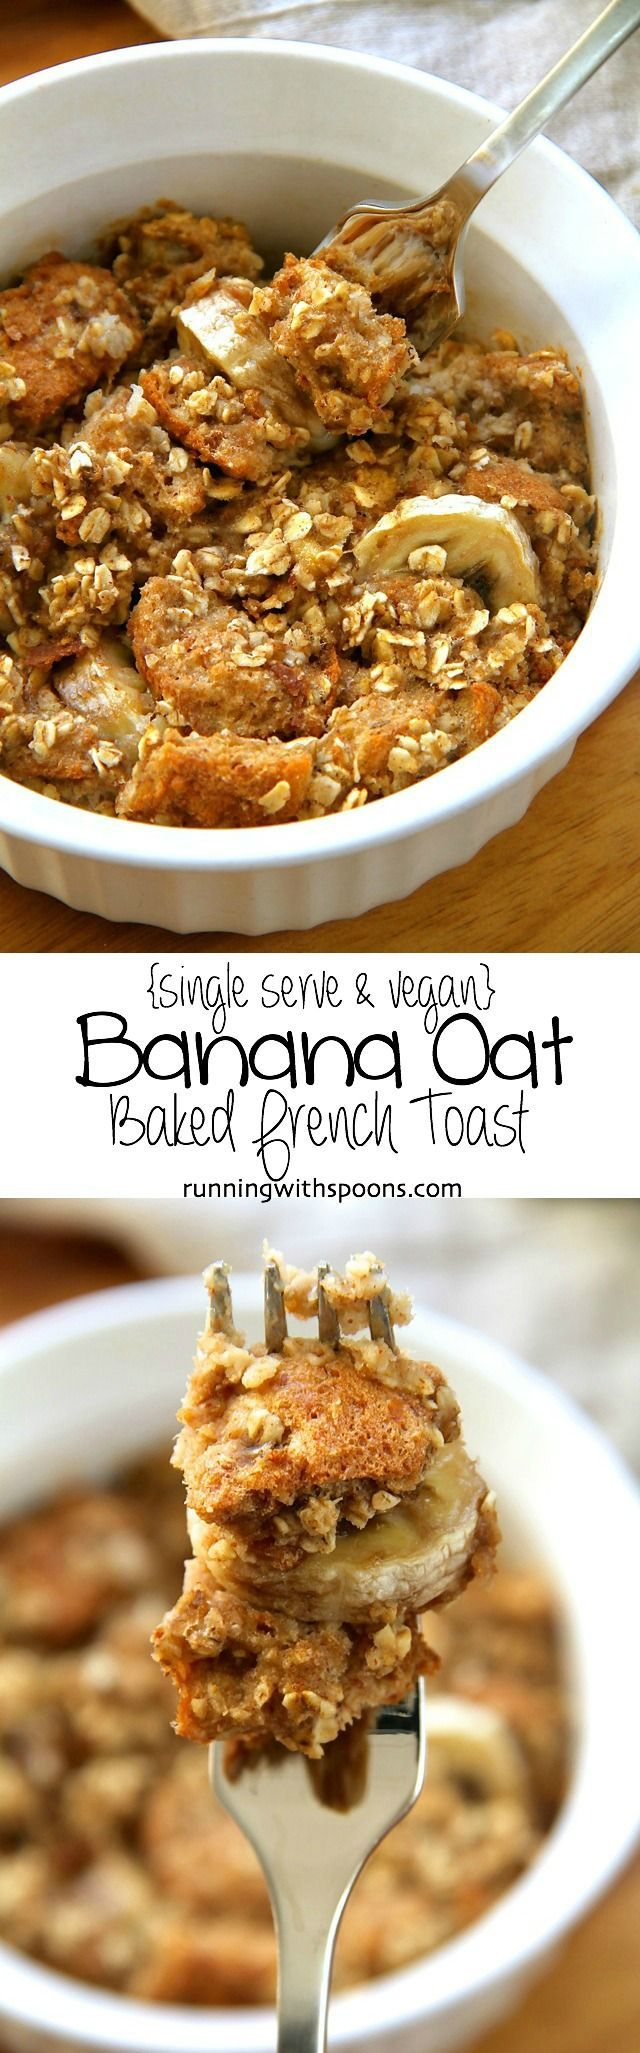 Banana Oat Baked French Toast -- a delicious single serve vegan breakfast that's packed with fibre and plant-based protein!